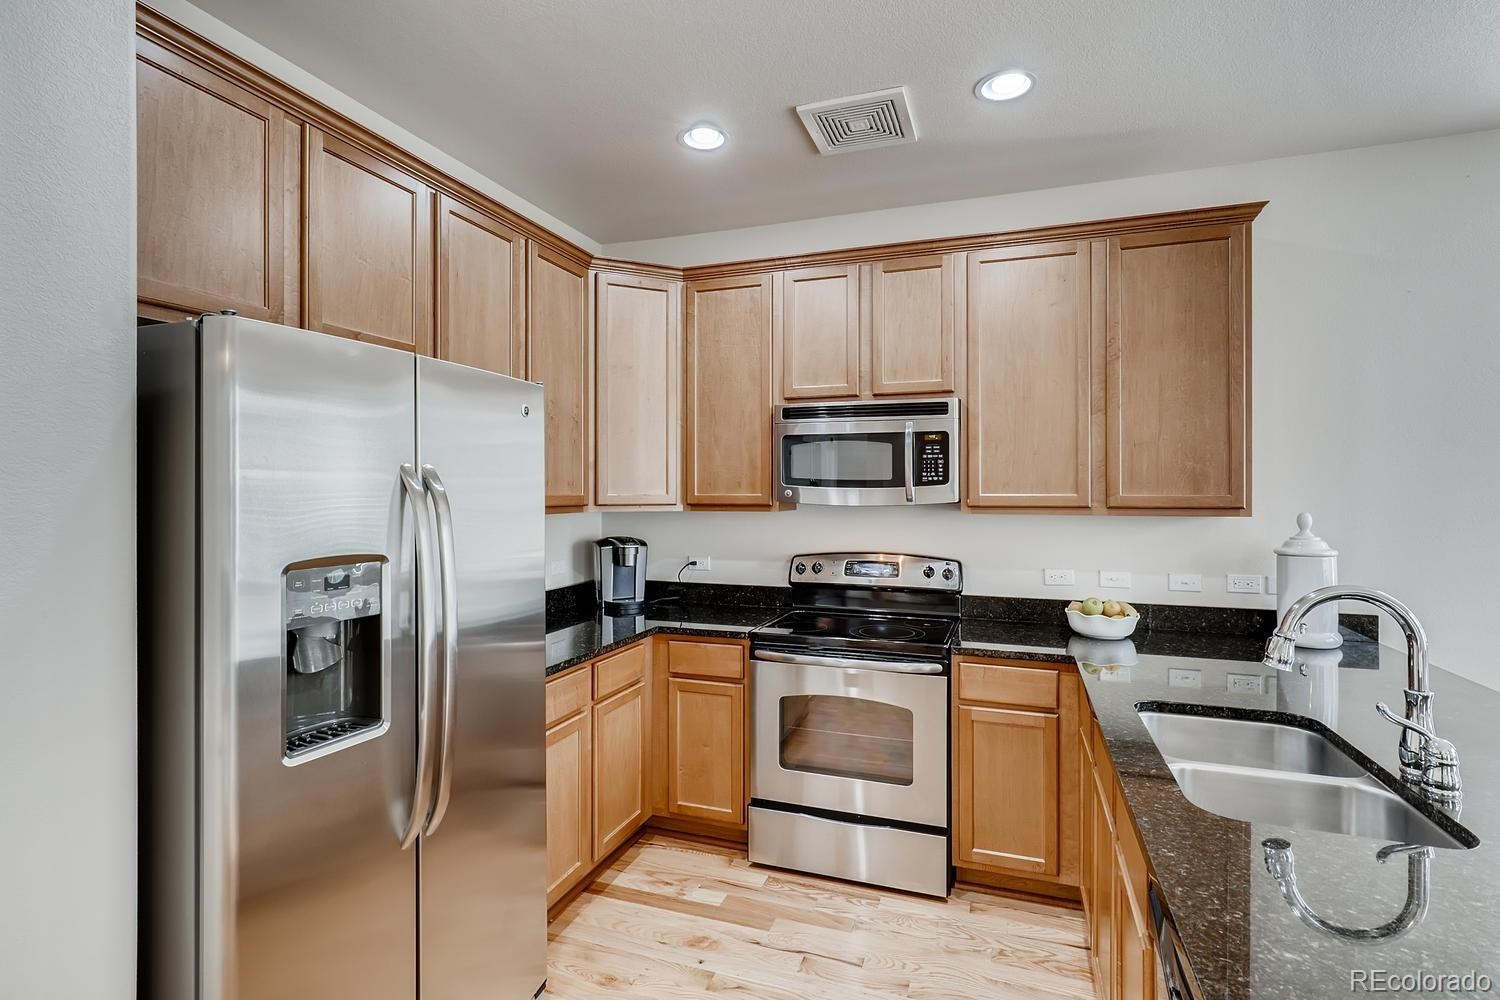 MLS# 8893940 - 9 - 1373 Armstrong Drive, Longmont, CO 80504